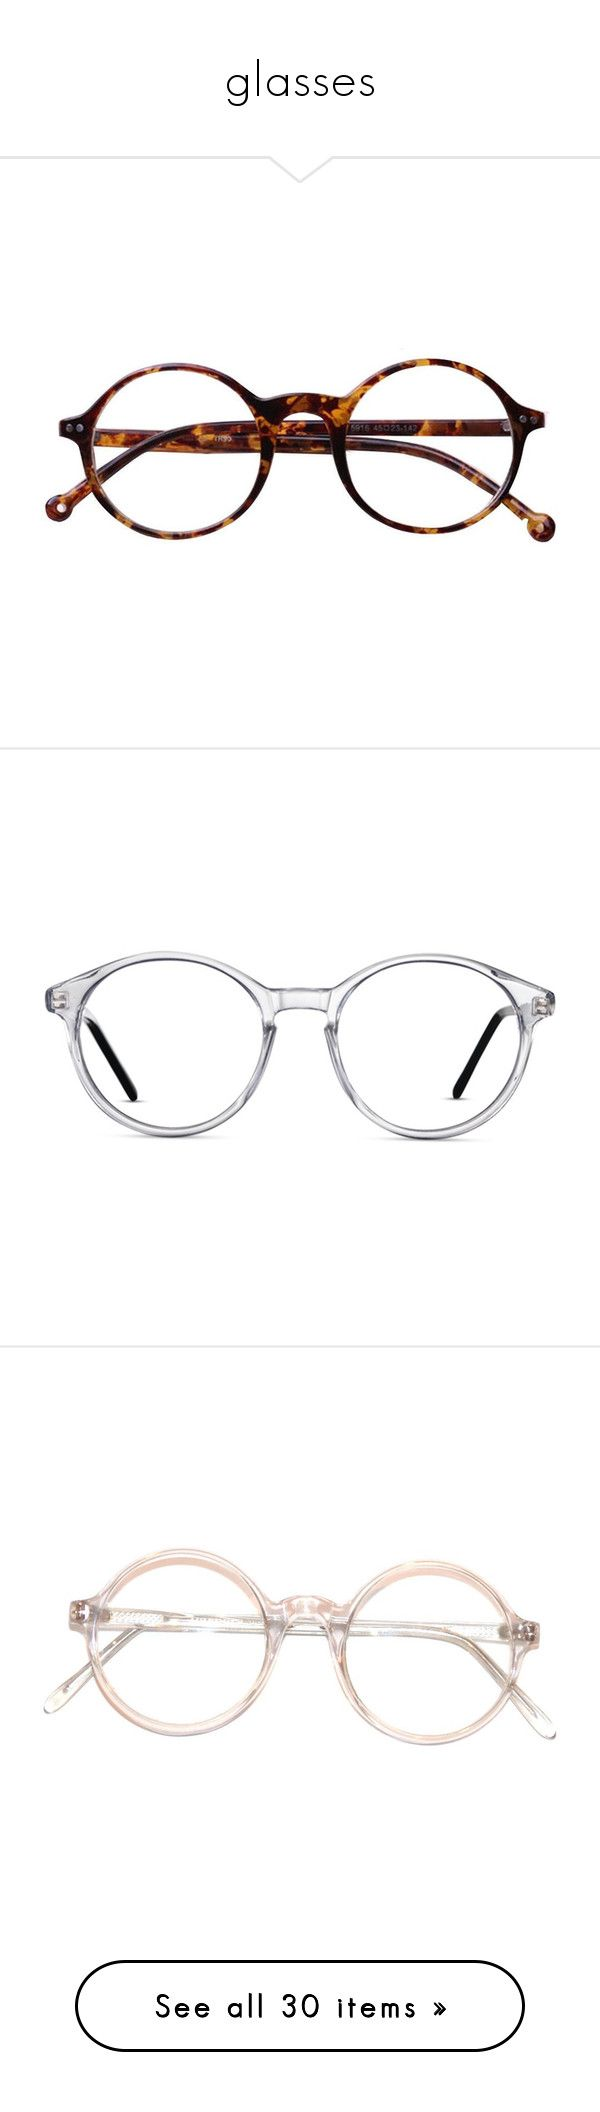 """glasses"" by taxicabs ❤ liked on Polyvore featuring accessories, eyewear, eyeglasses, glasses, sunglasses, fillers, retro eye glasses, leopard glasses, vintage round eyeglasses and round eye glasses"